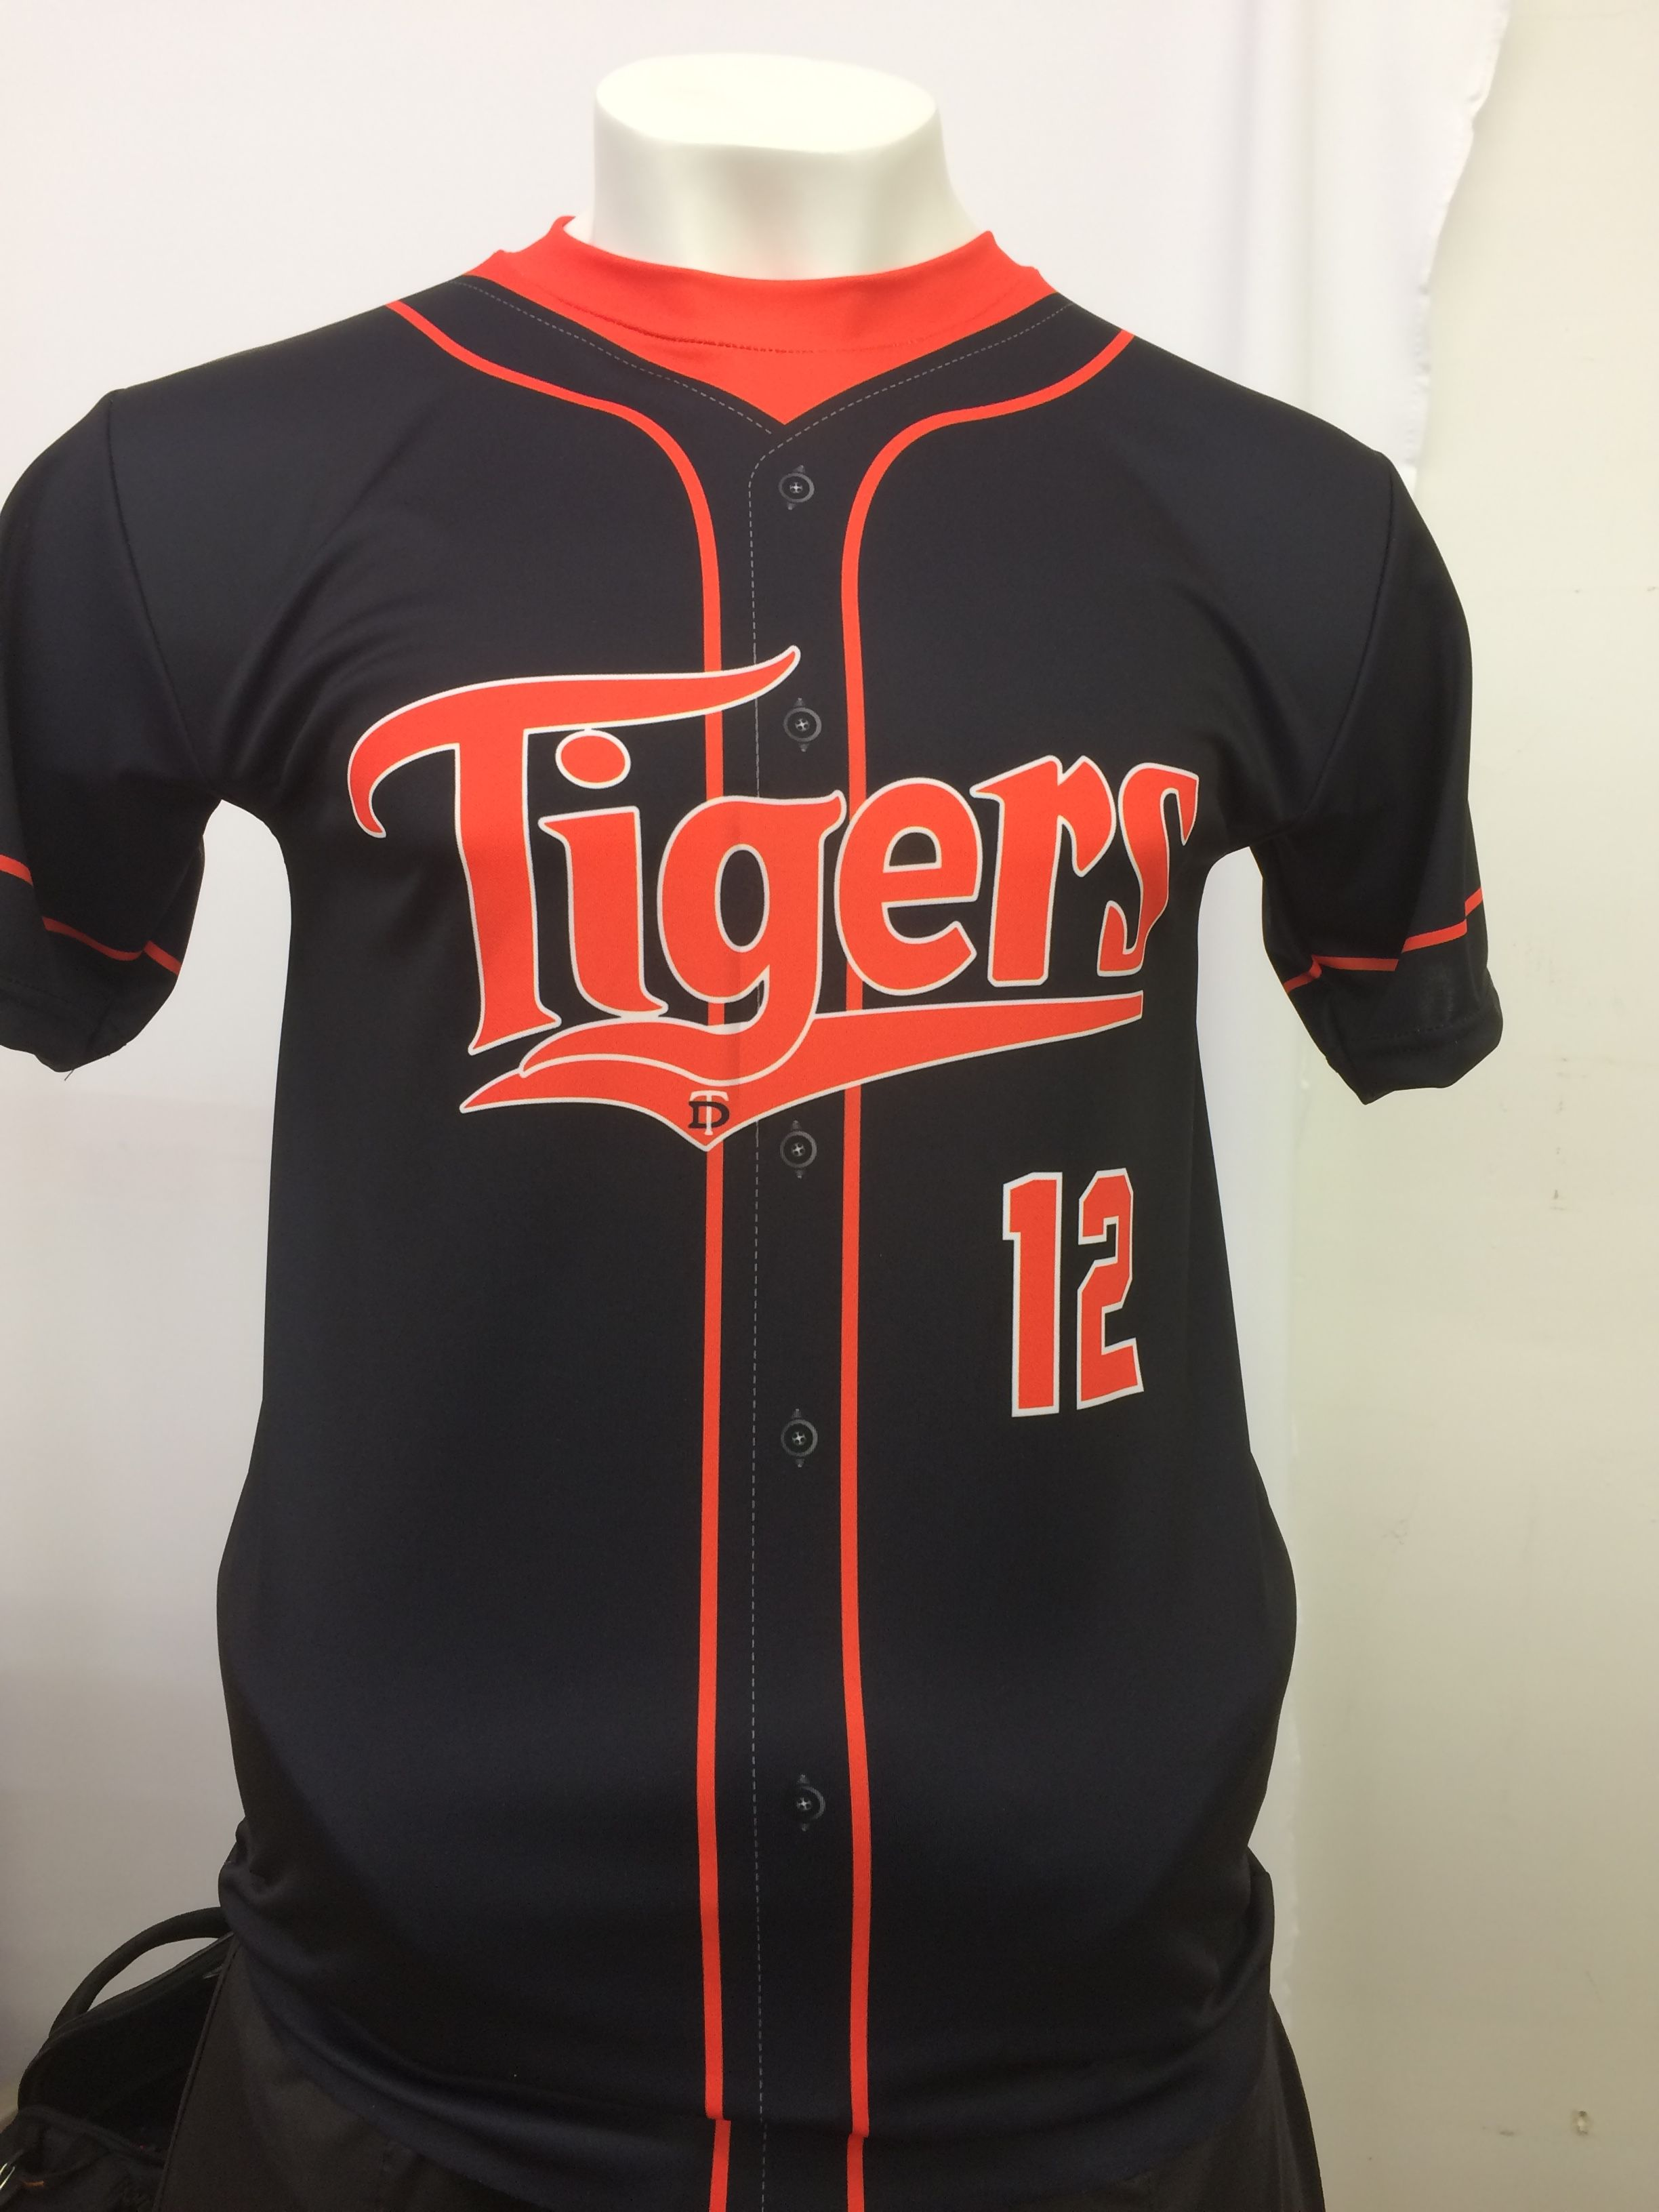 fdd3d2df745 Another custom sublimated baseball t-shirt with sublimated buttons. Made in  the USA at K1 Sportswear.